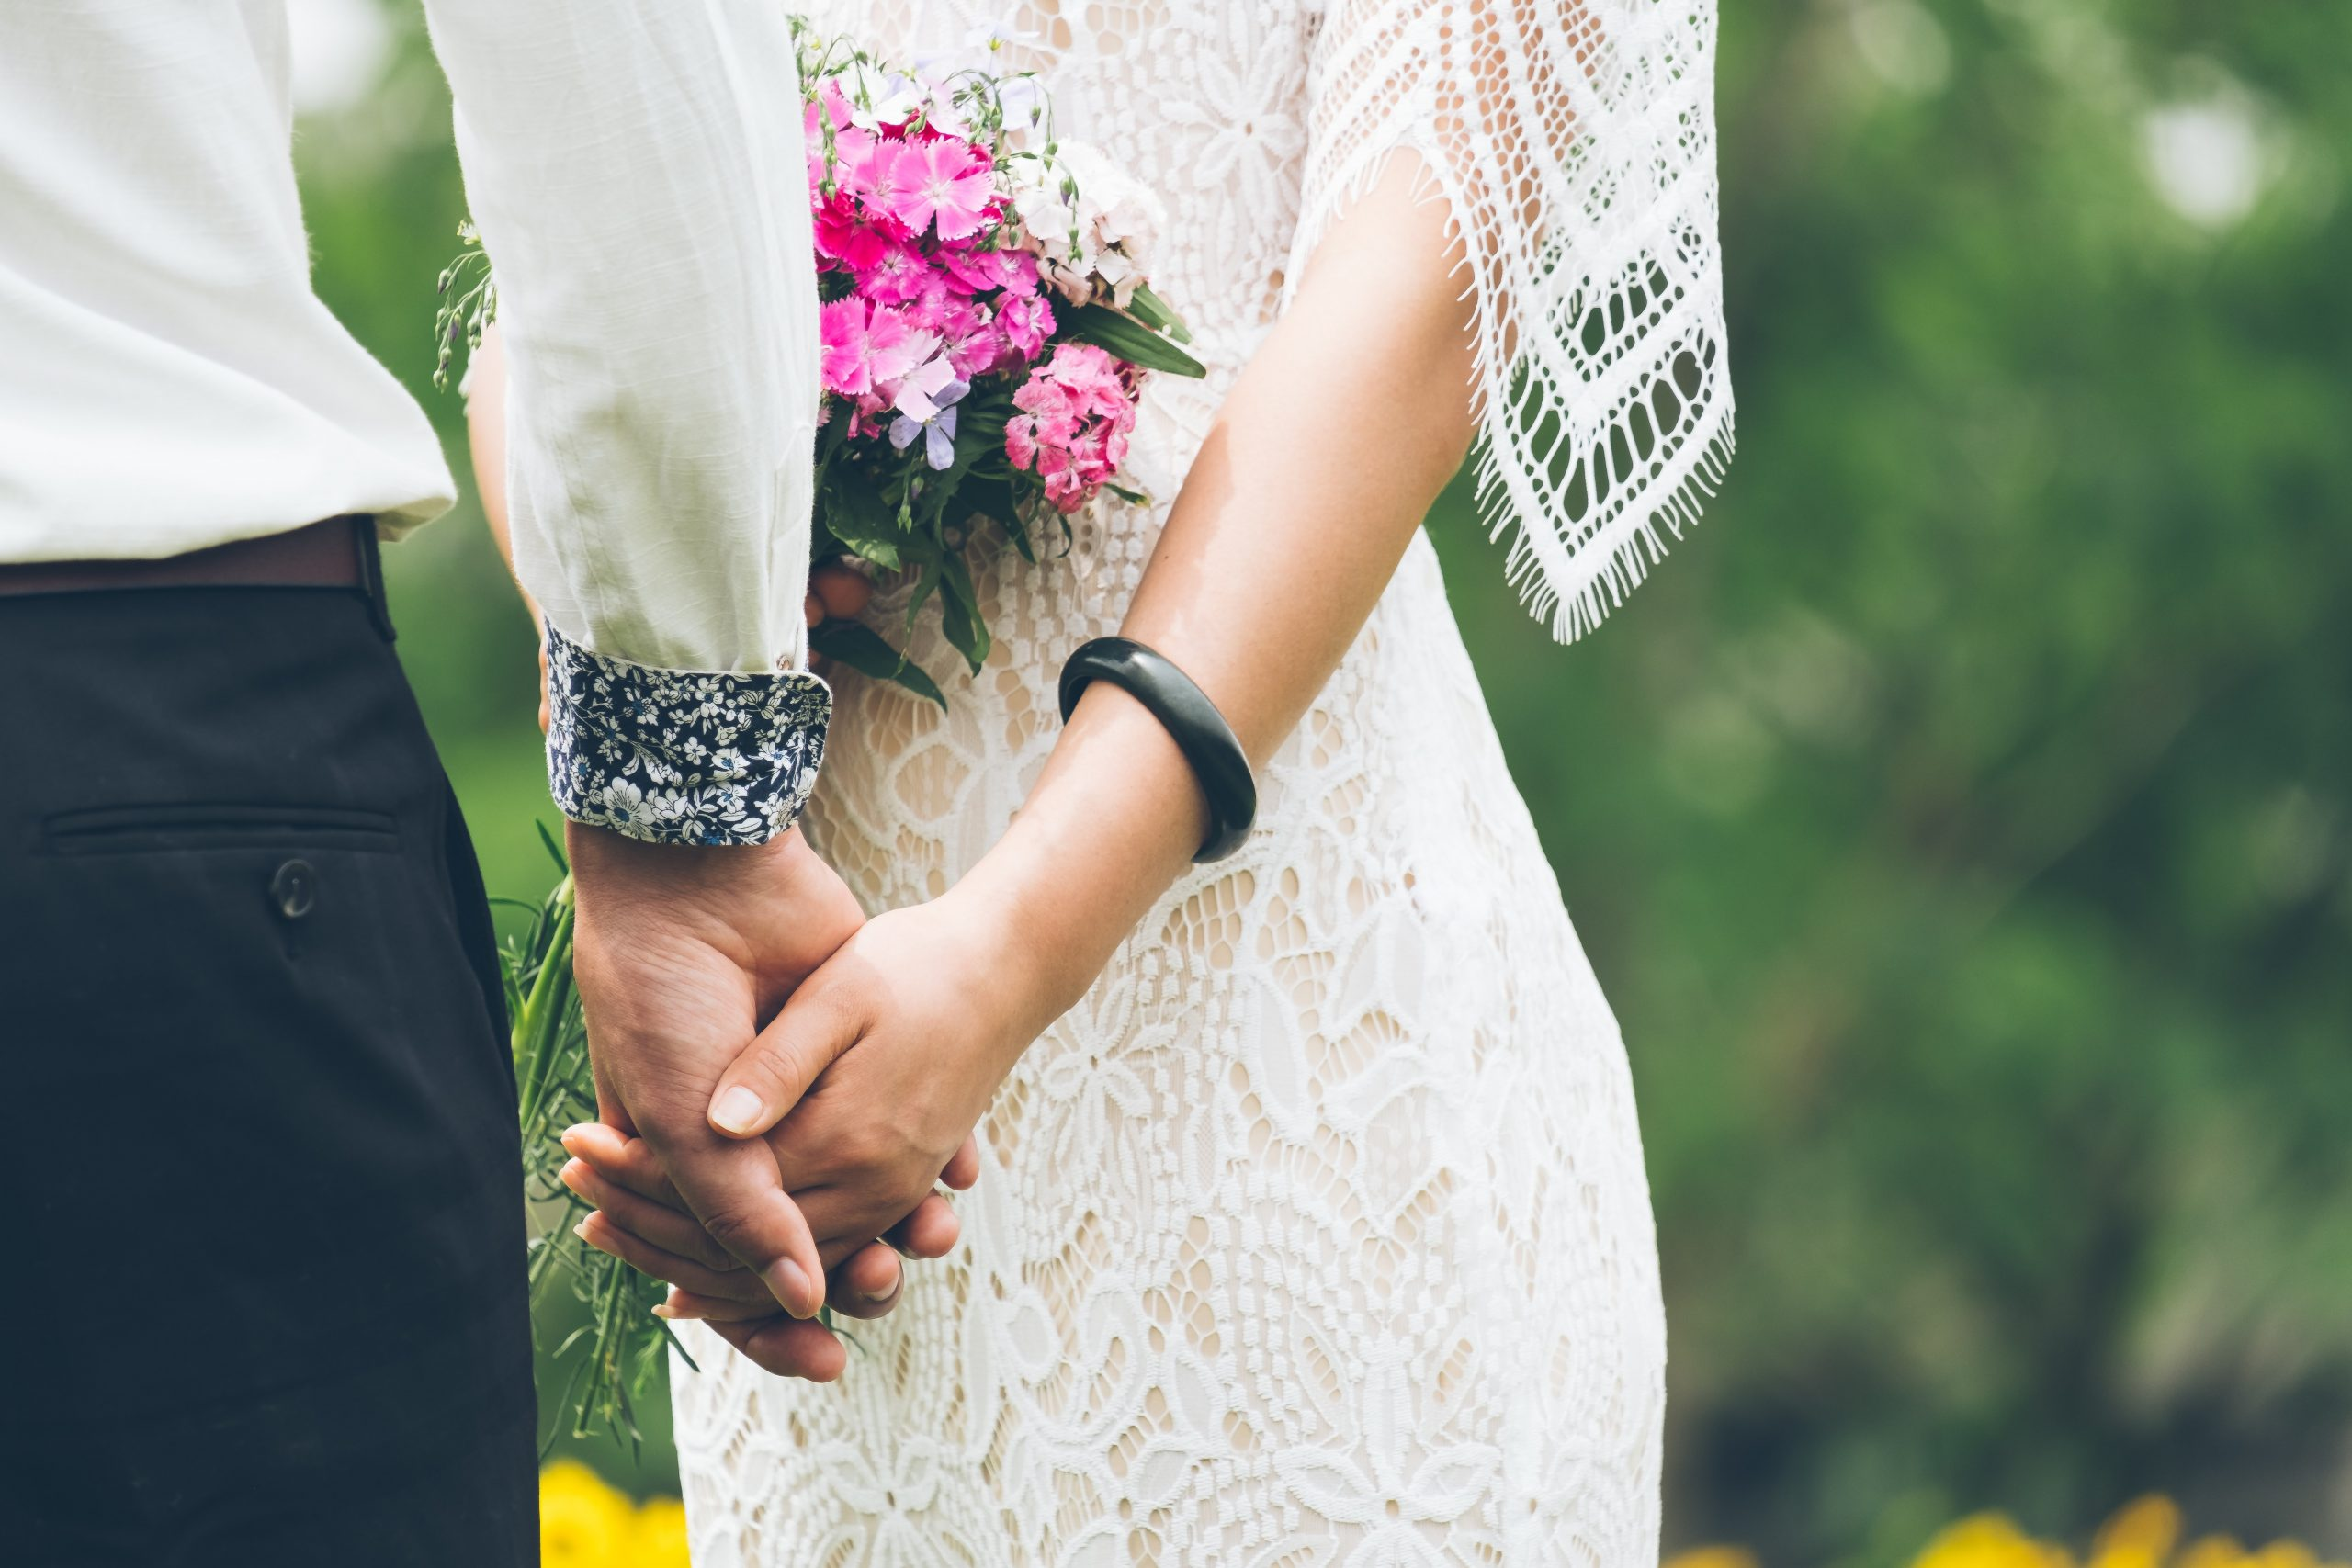 A wedding couple outside in the spring, holding hands.